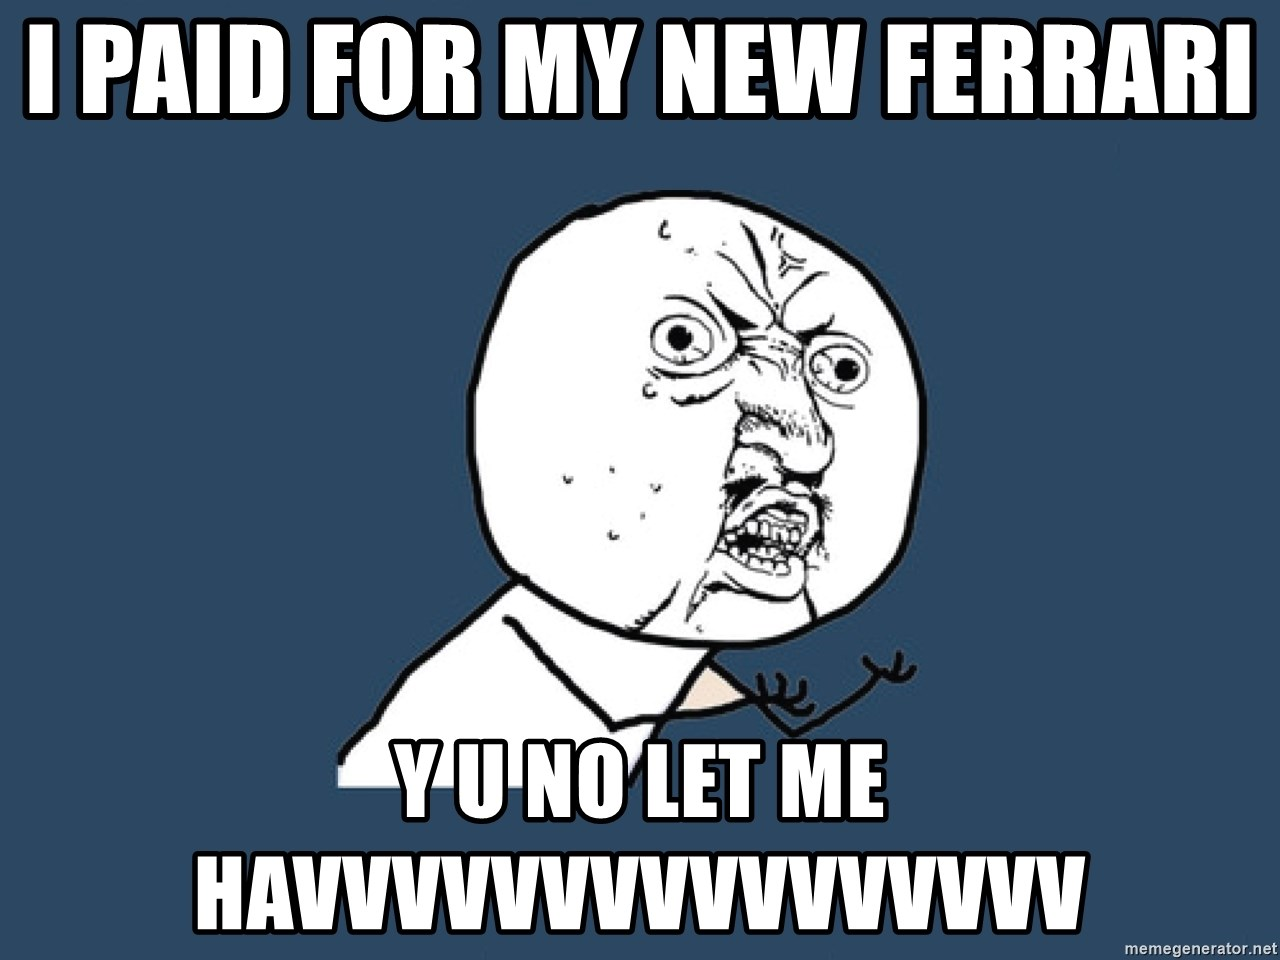 Y U No - i paid for my new ferrari  y u no let me havvvvvvvvvvvvvvvv